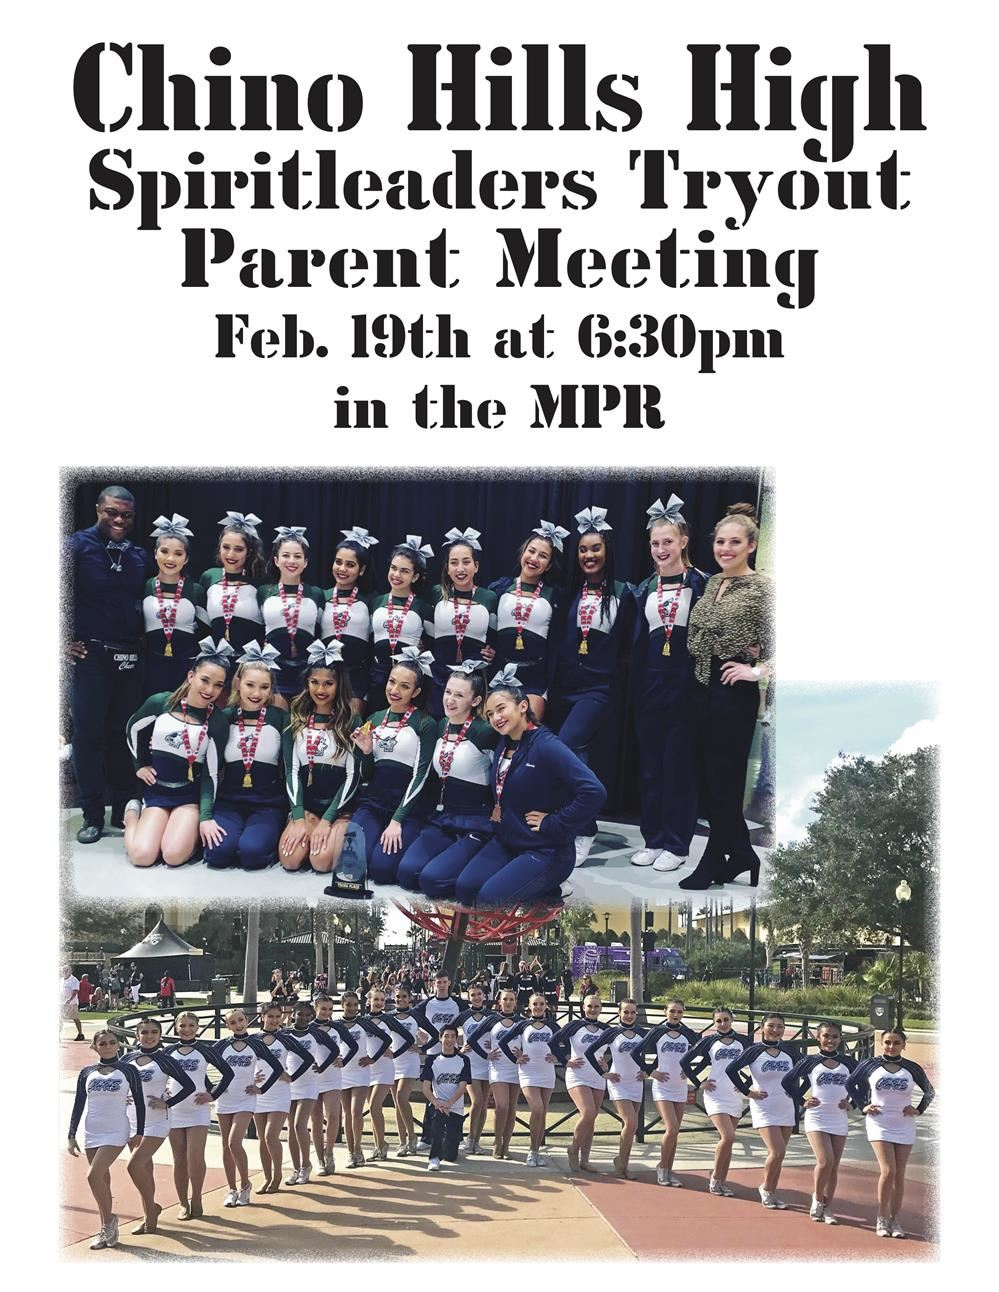 Spiritleaders Parent Meeting